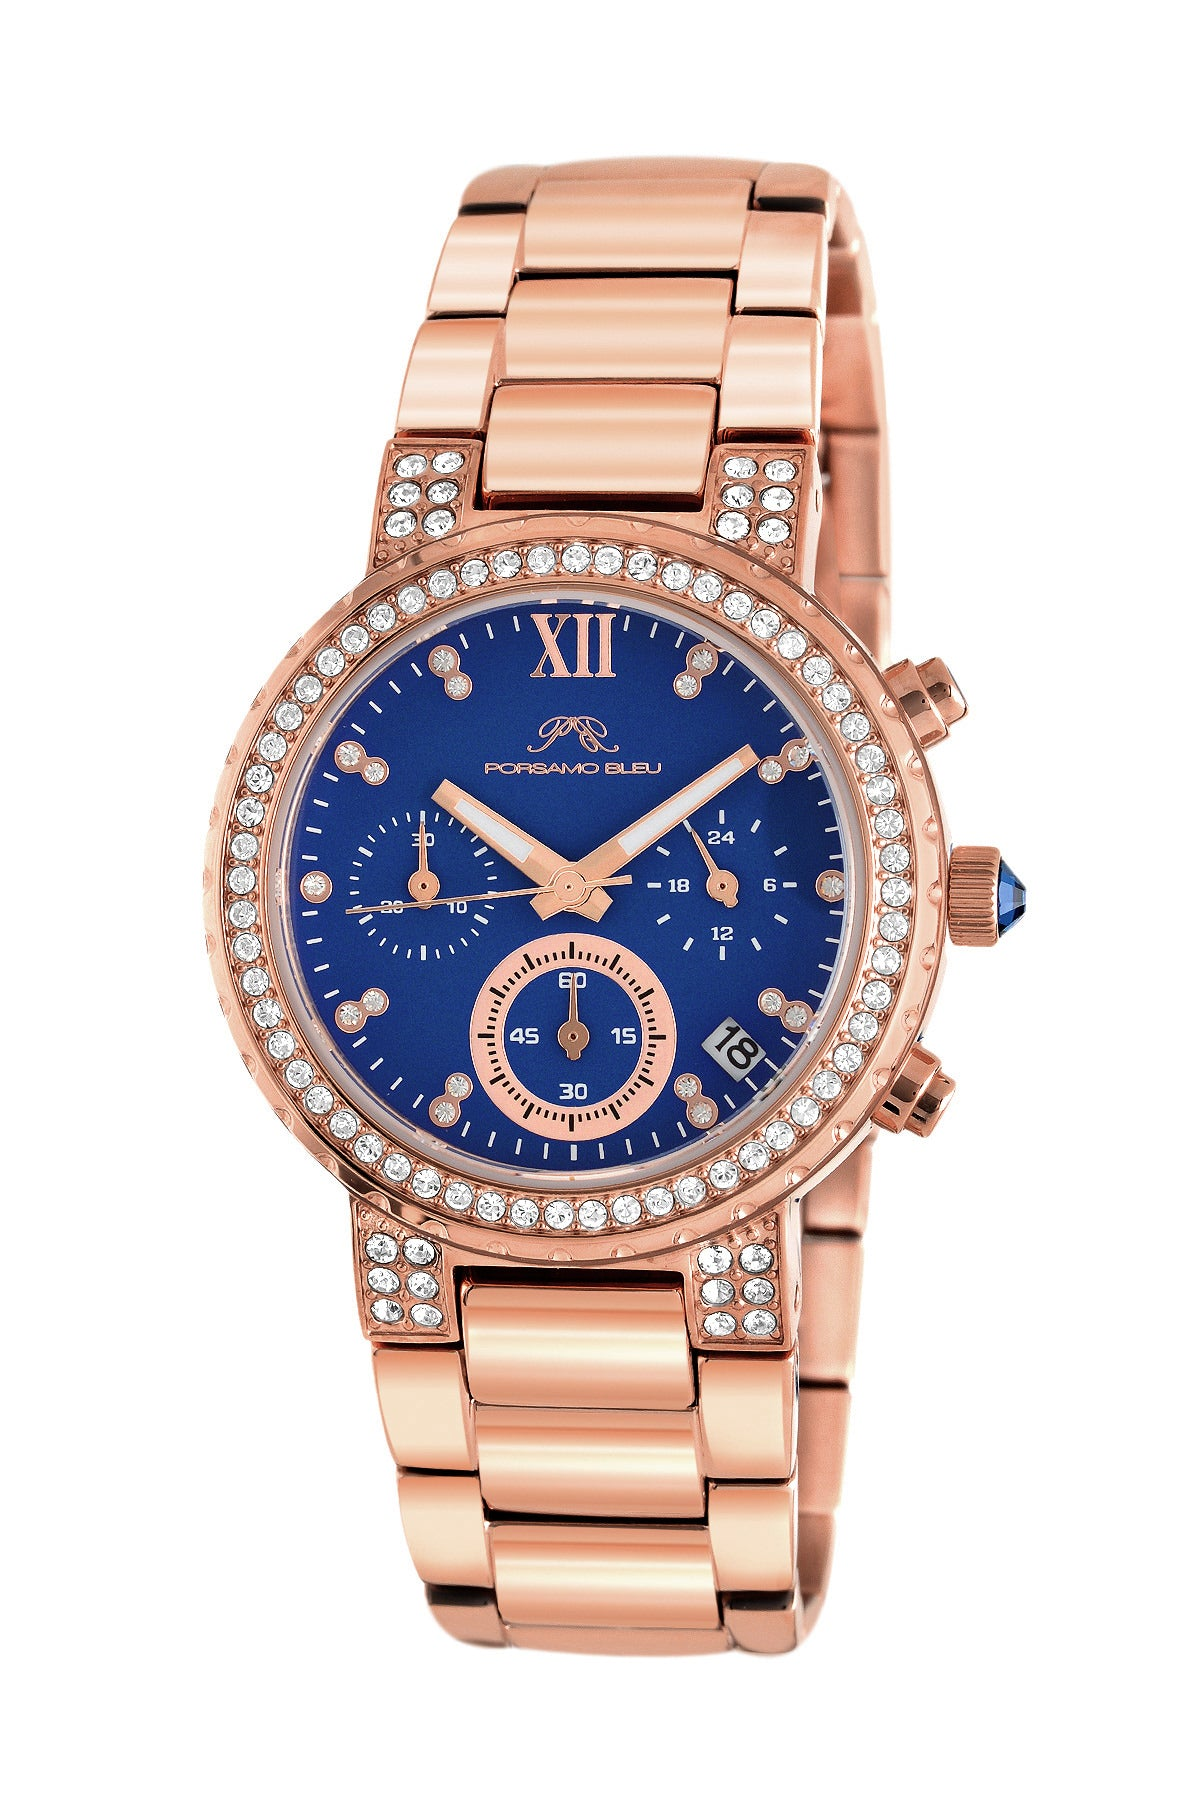 Porsamo Bleu Pilar luxury chronograph women's stainless steel watch, rose, blue 502CPIS